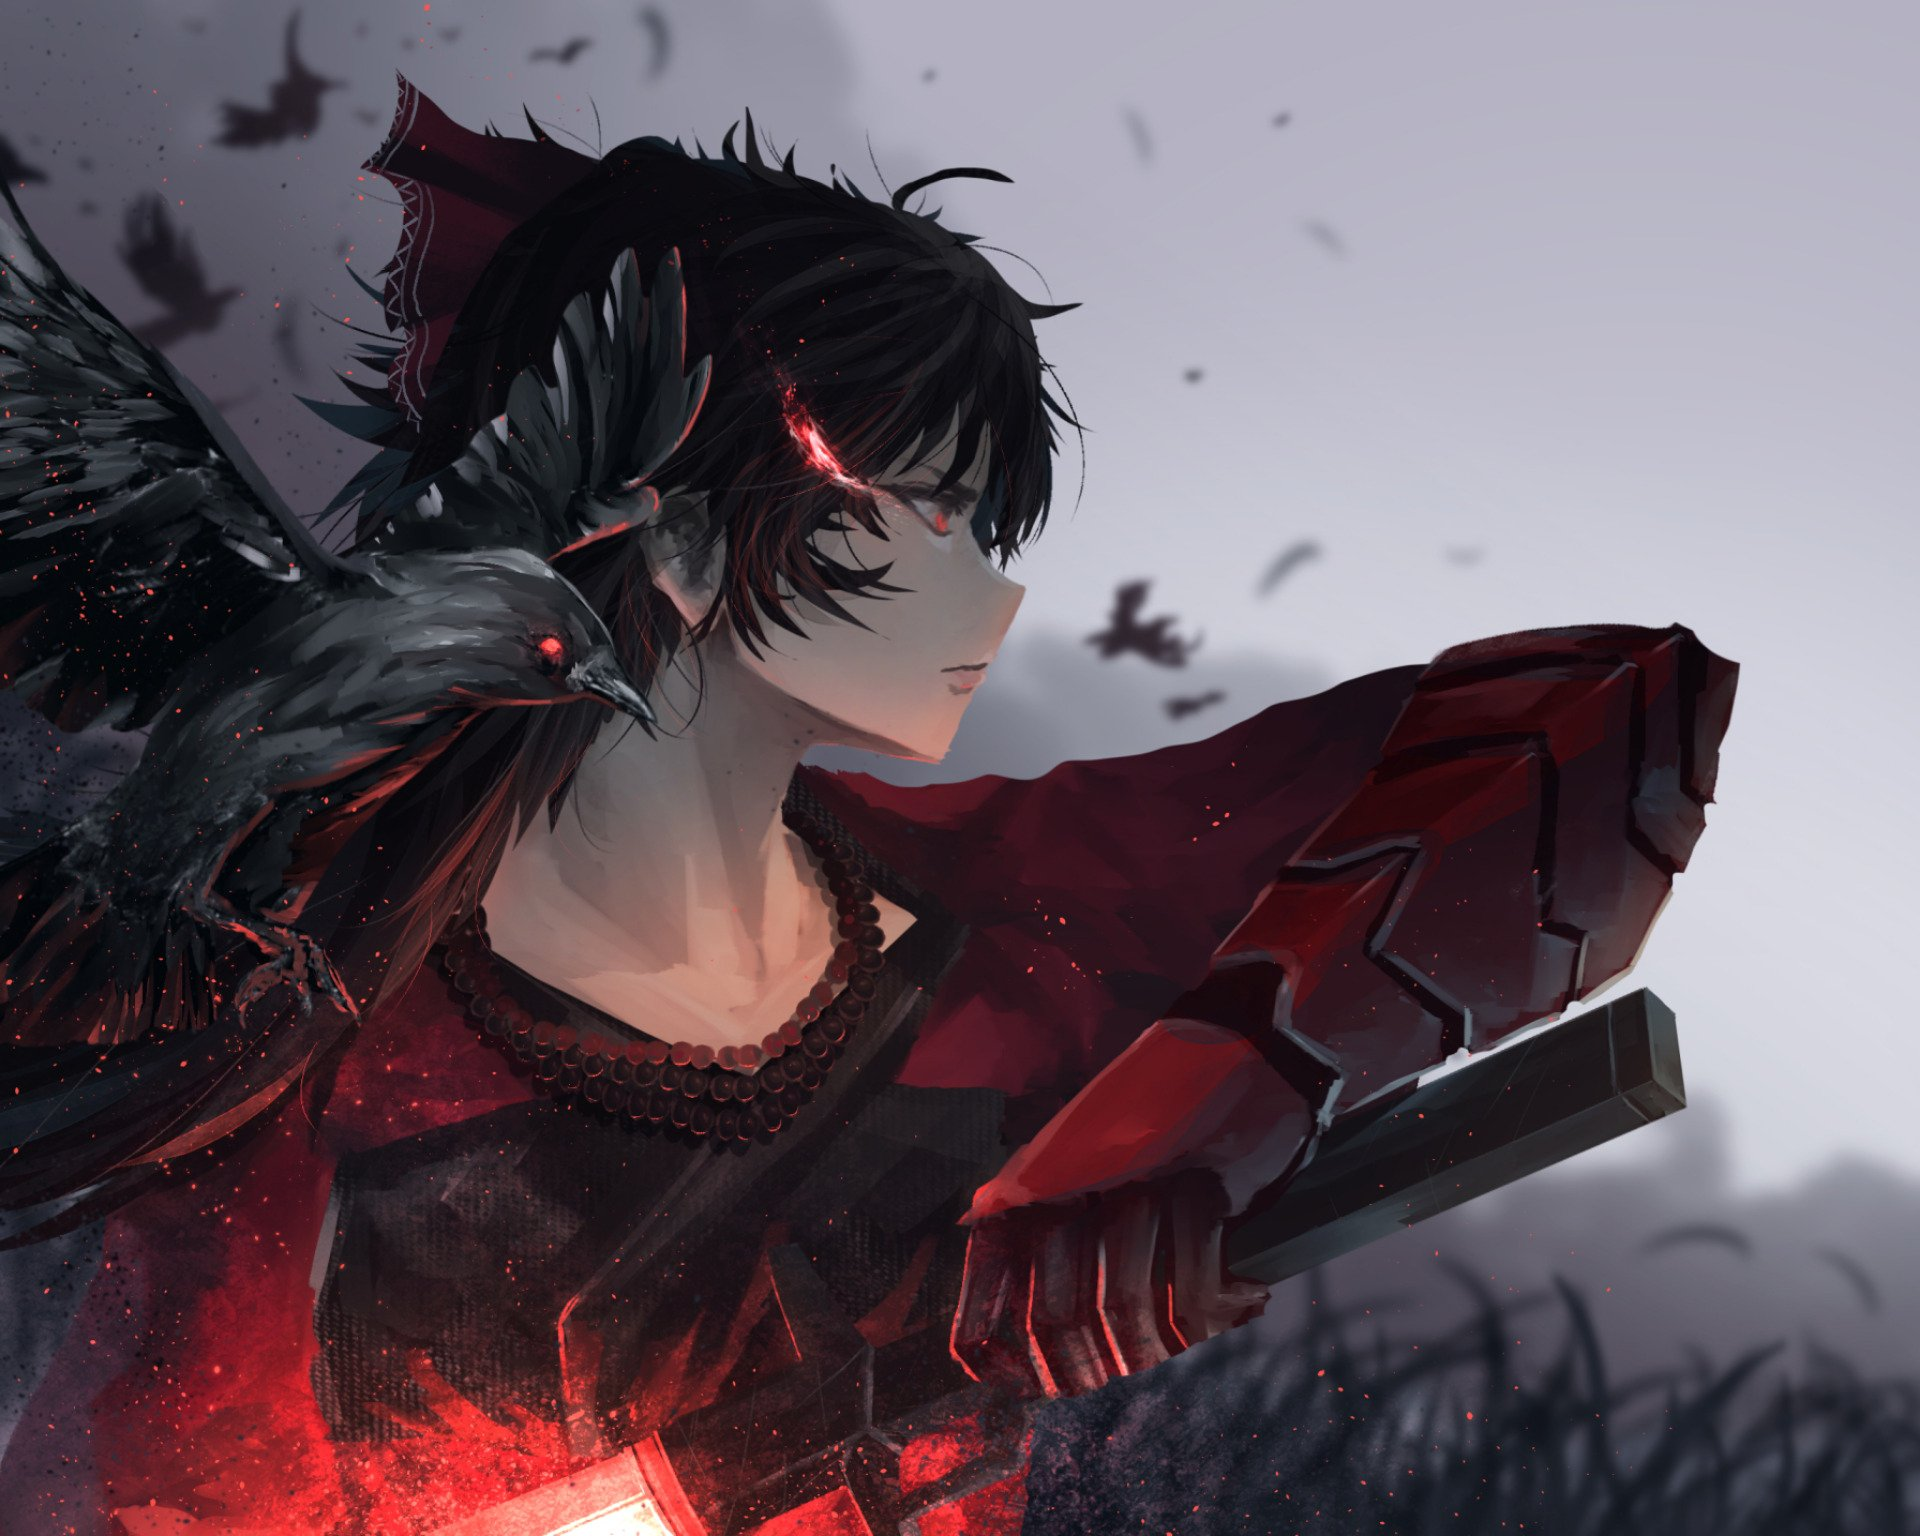 5 Raven Branwen Hd Wallpapers Background Images Wallpaper Abyss Had the audacity to show up on my doorstep. 5 raven branwen hd wallpapers